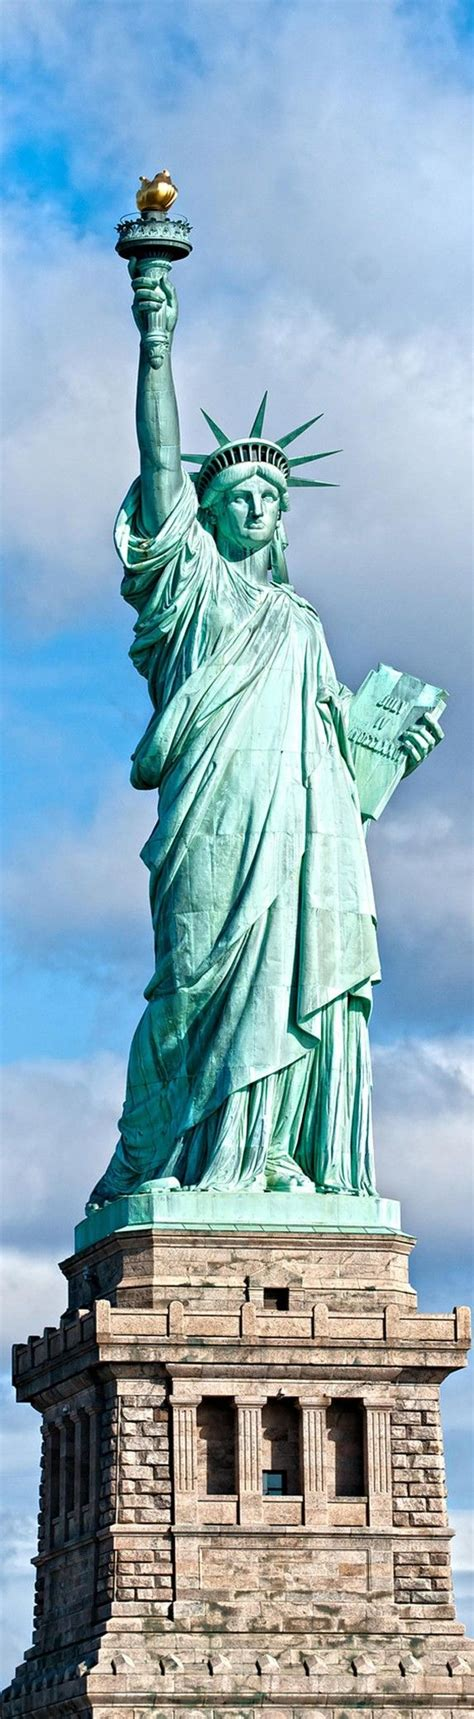 lade liberty 25 best ideas about statue of liberty on